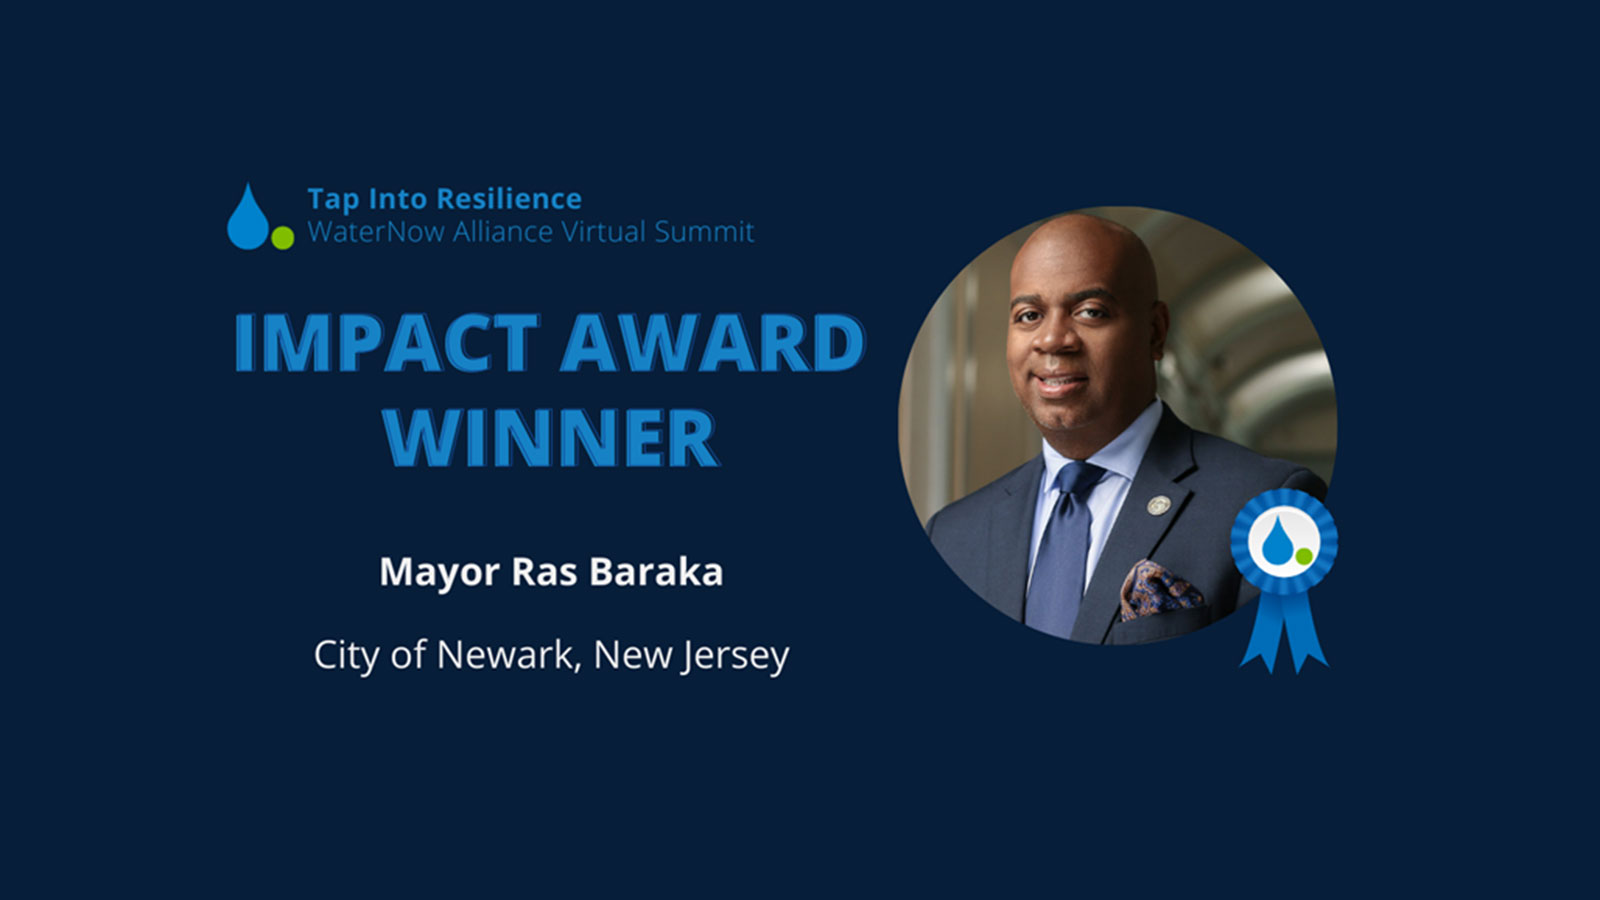 2021 WaterNow Alliance Impact Award Recipient Mayor Ras J. Baraka